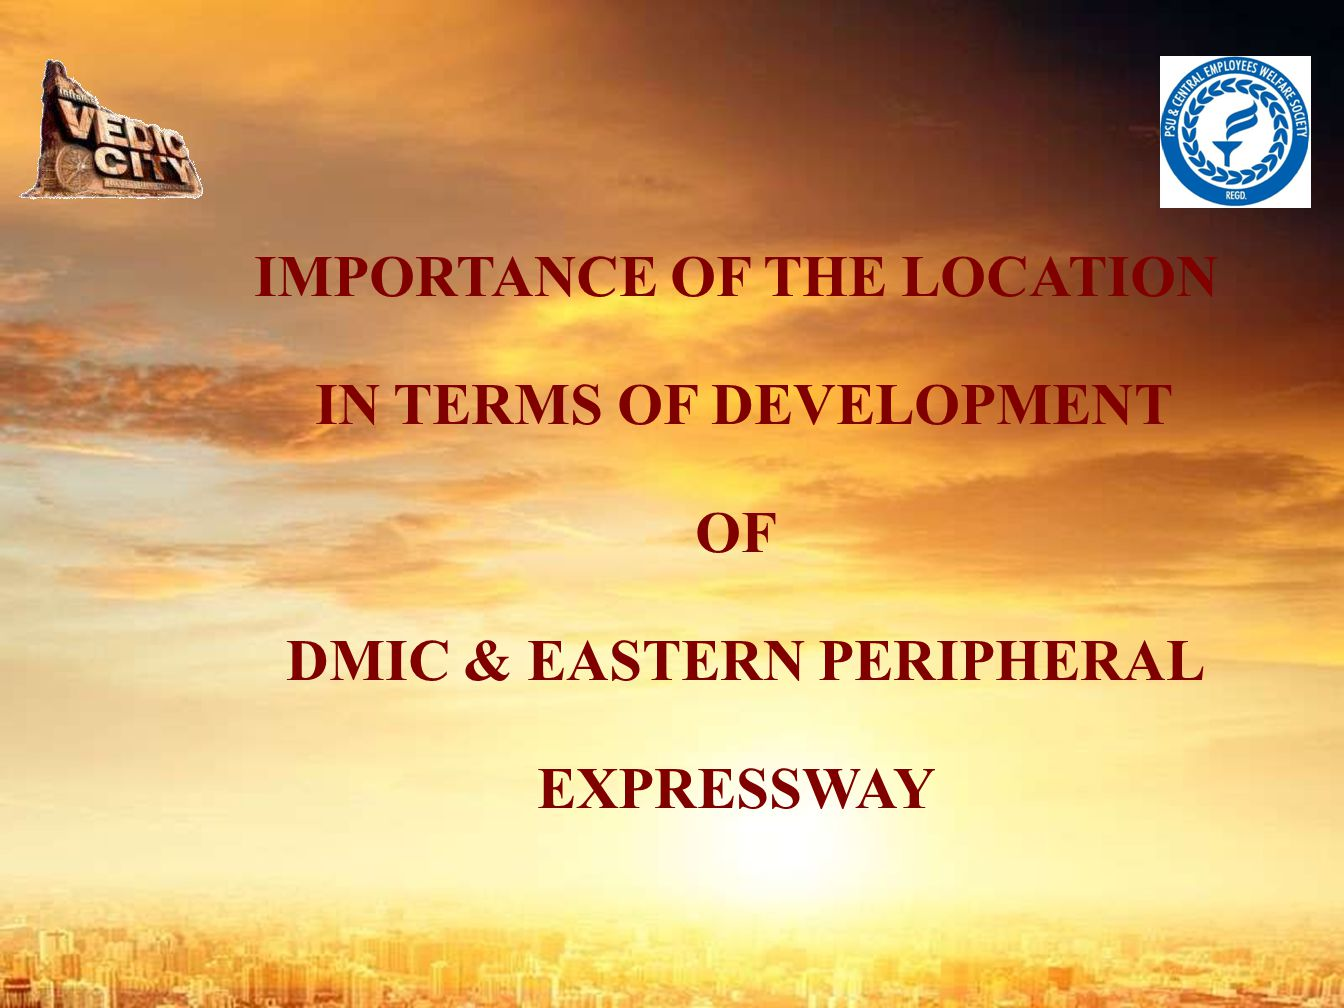 IMPORTANCE OF THE LOCATION IN TERMS OF DEVELOPMENT OF